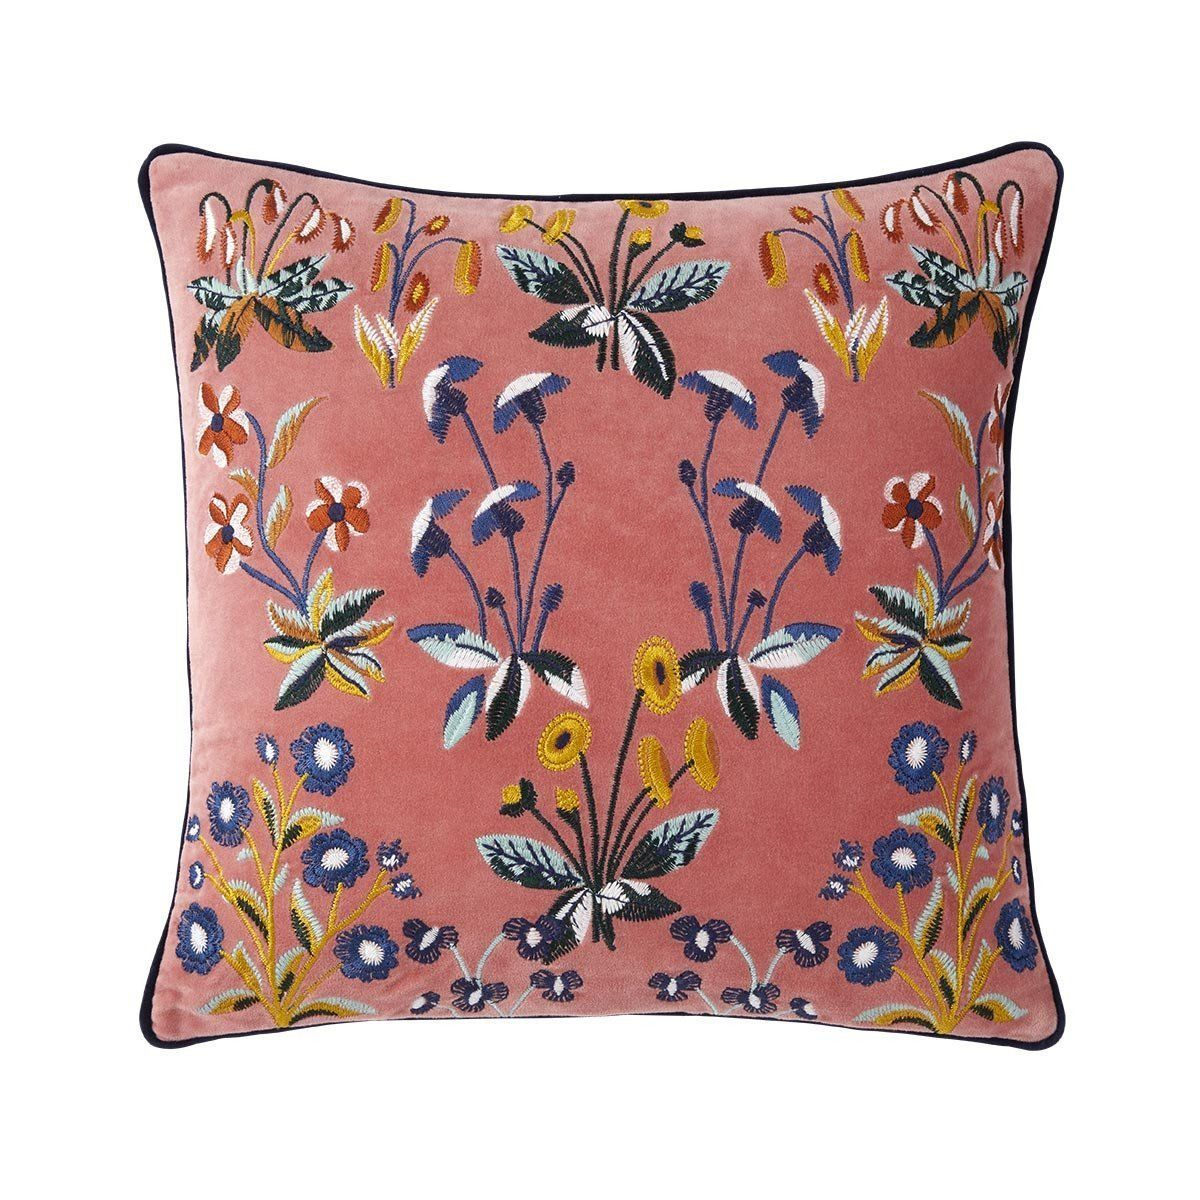 Renaissance Melba Floral Pillow by Iosis